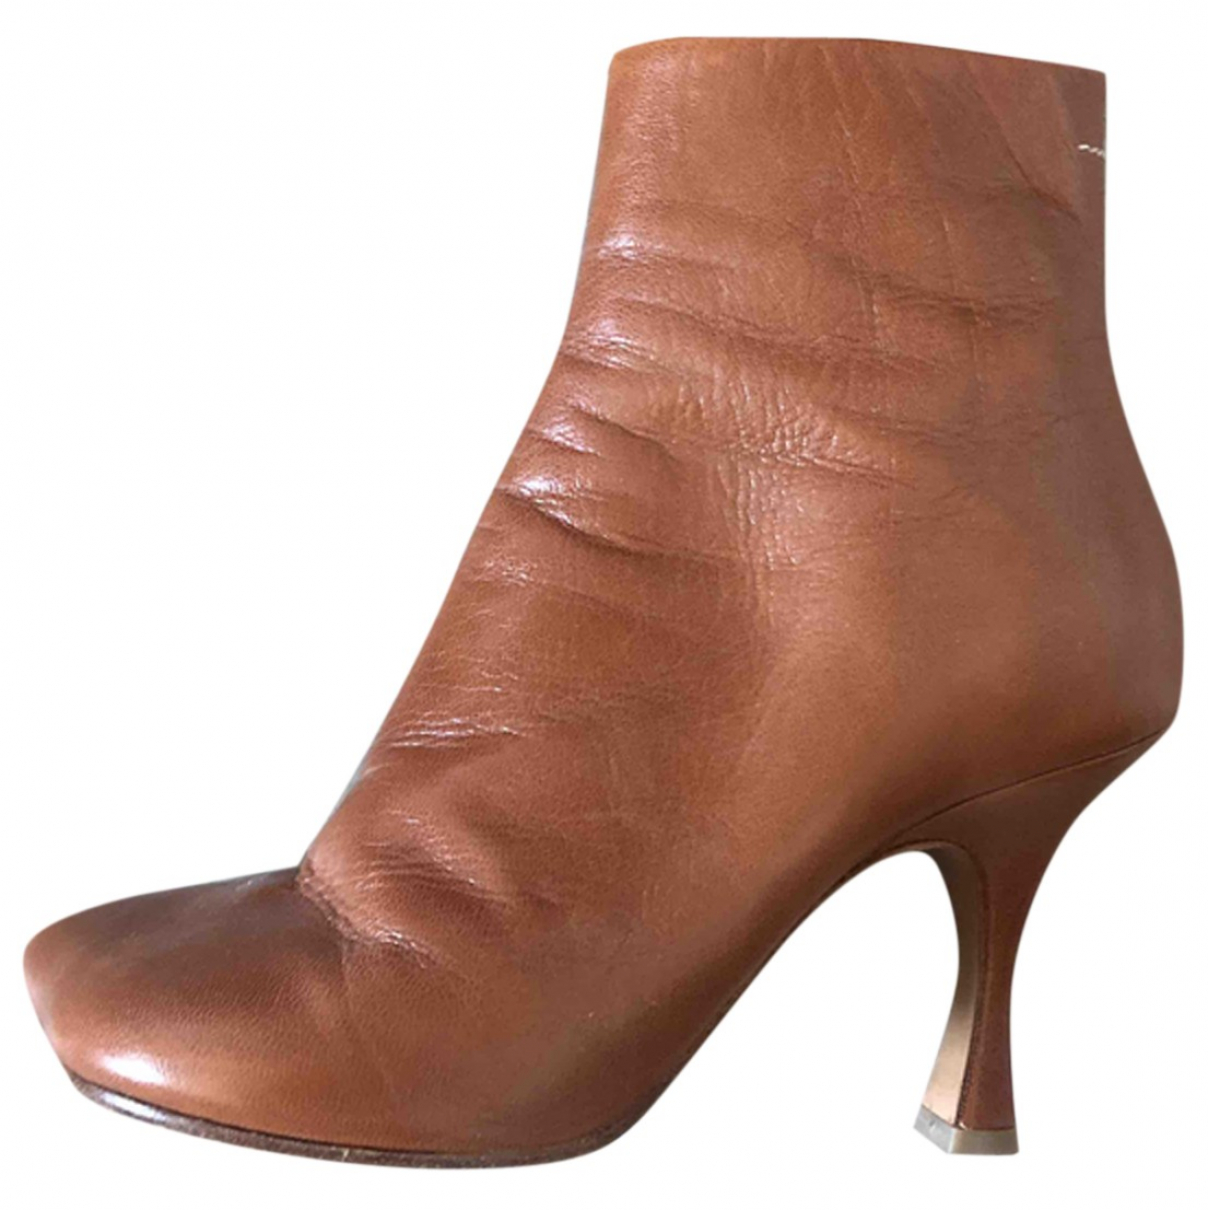 Maison Martin Margiela N Camel Leather Ankle boots for Women 39 IT